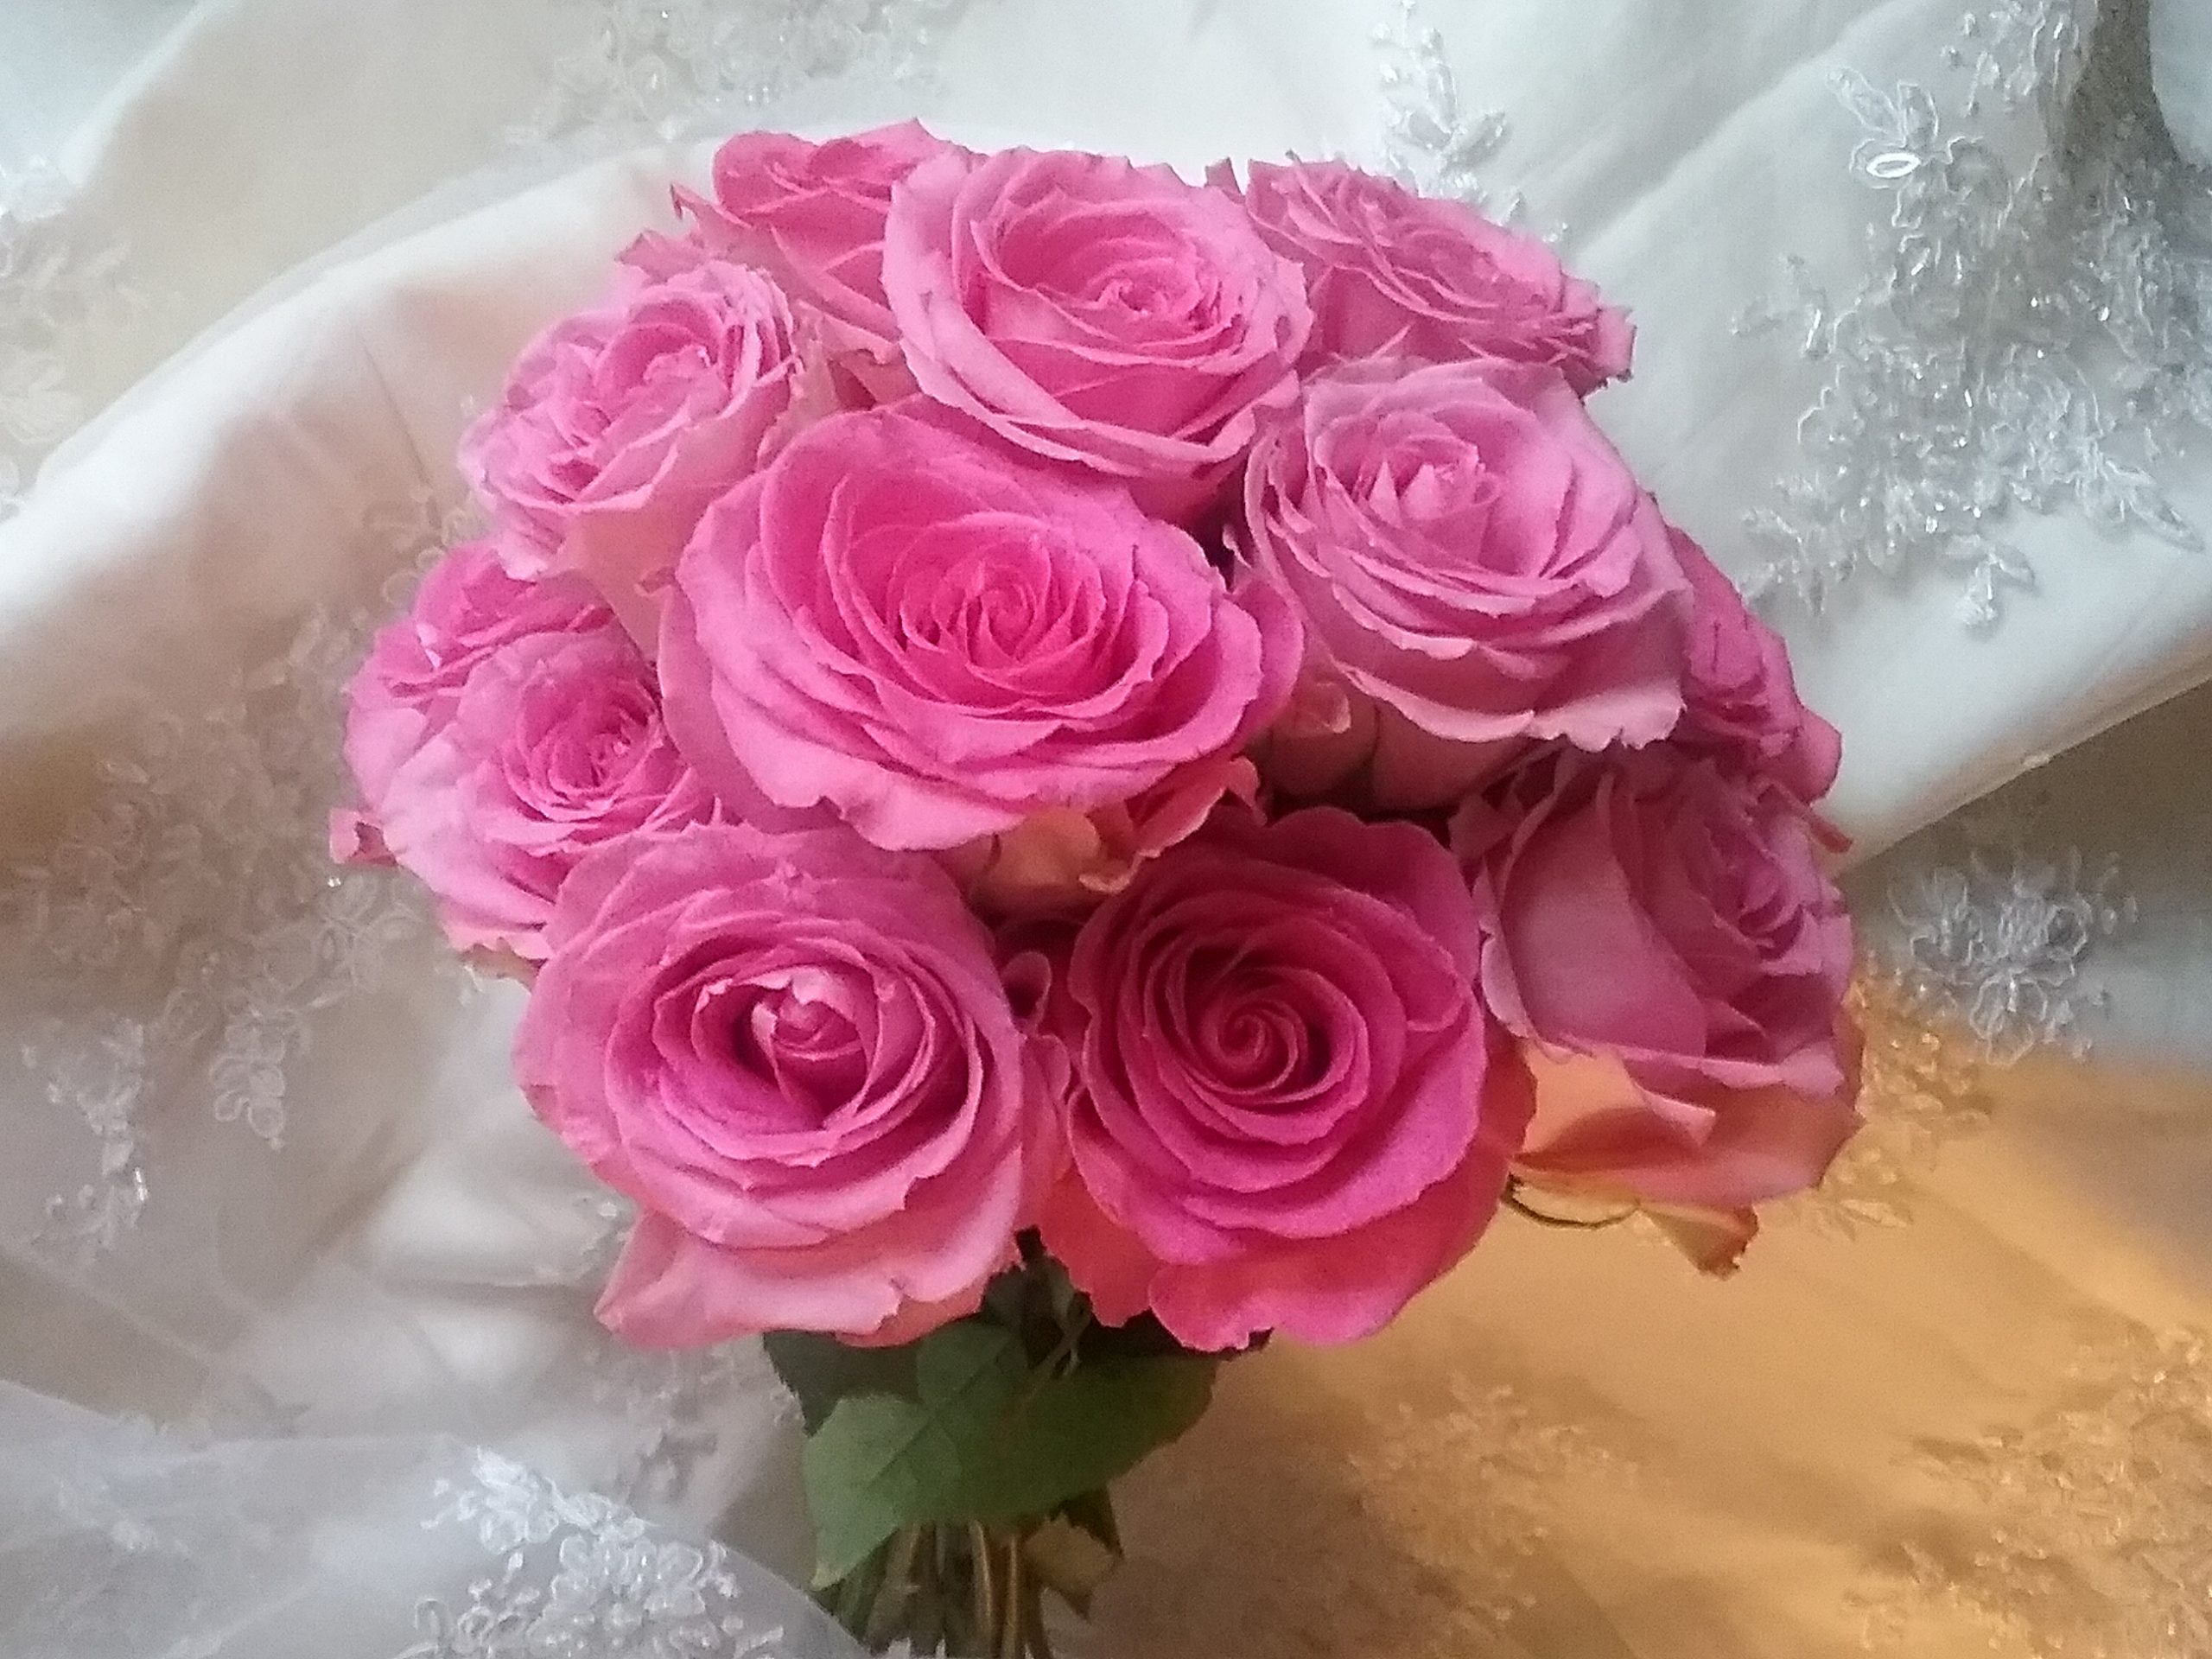 Roses to create Tranquillity